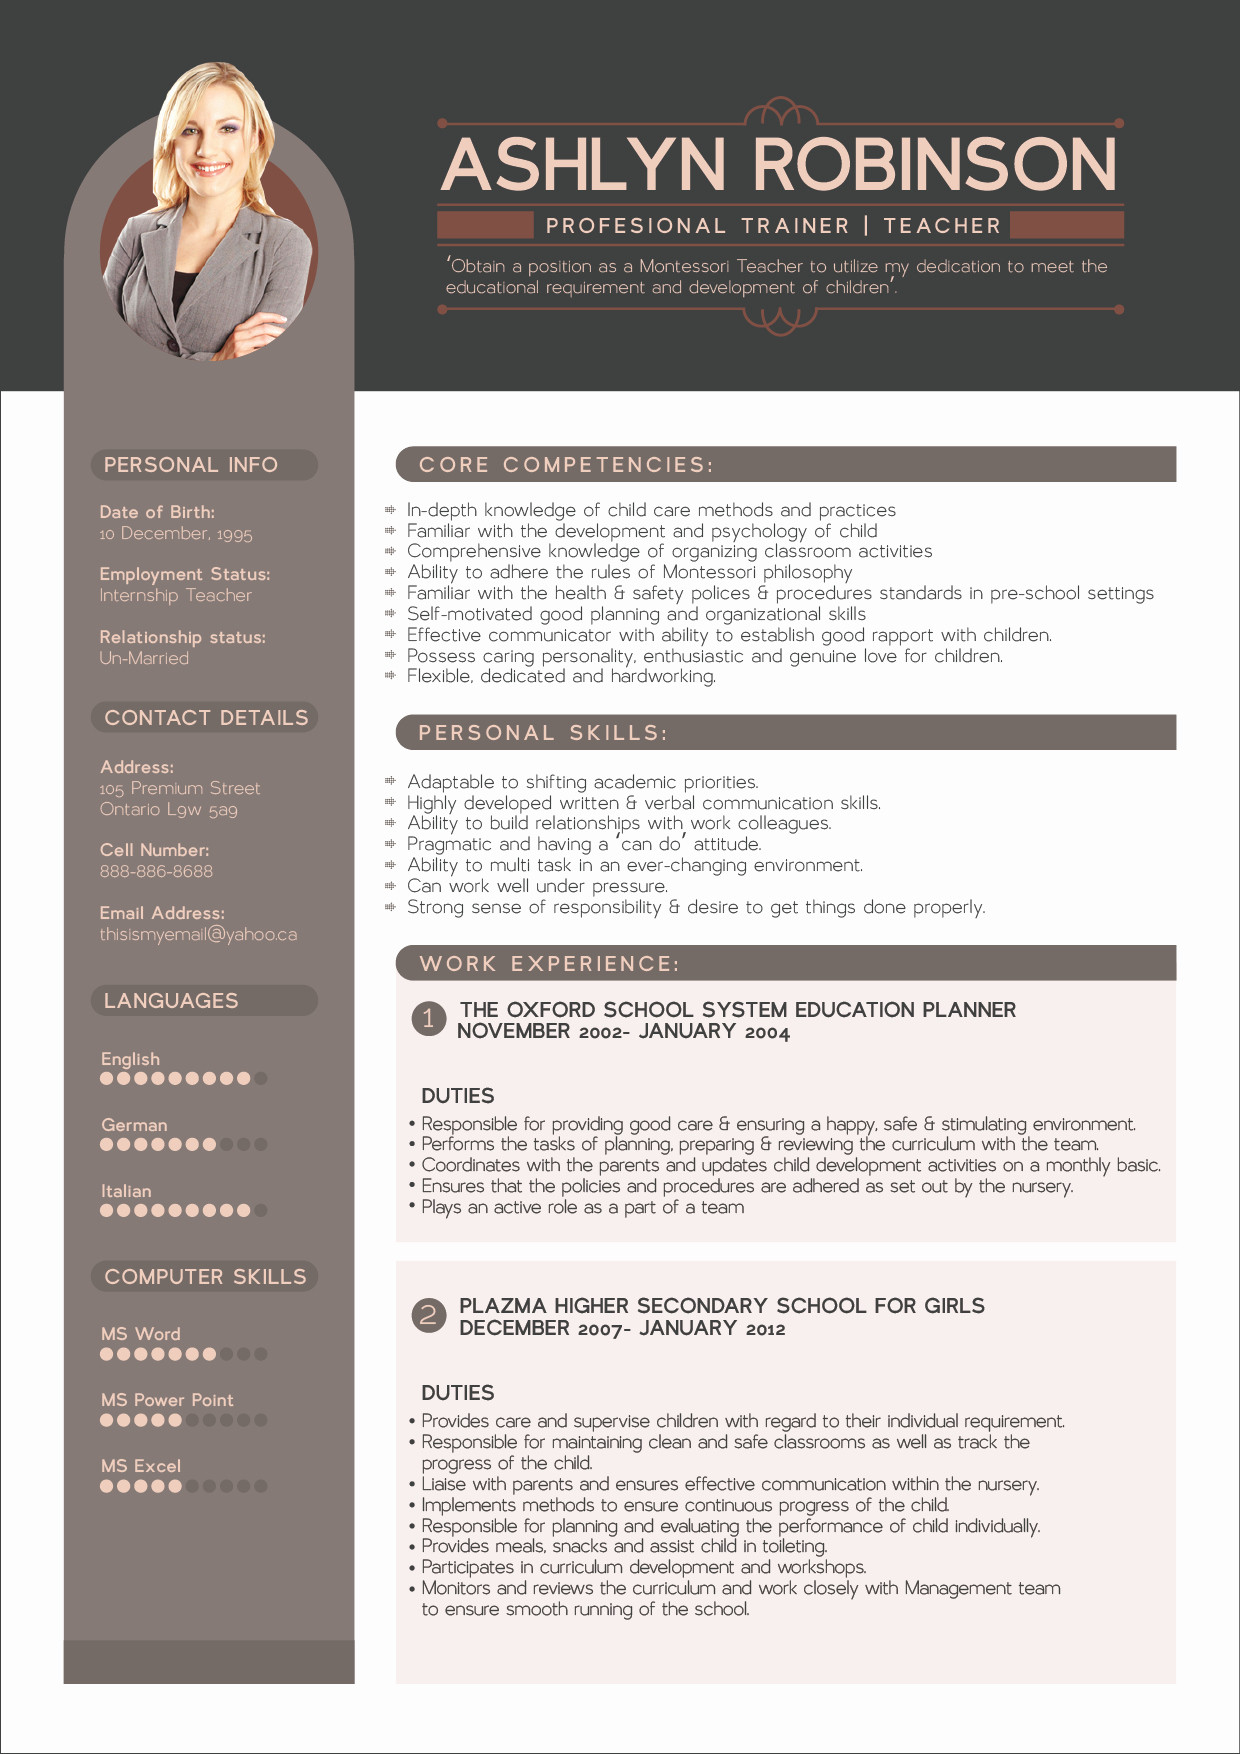 Free Resume Cv Design Template for Trainers & Teachers